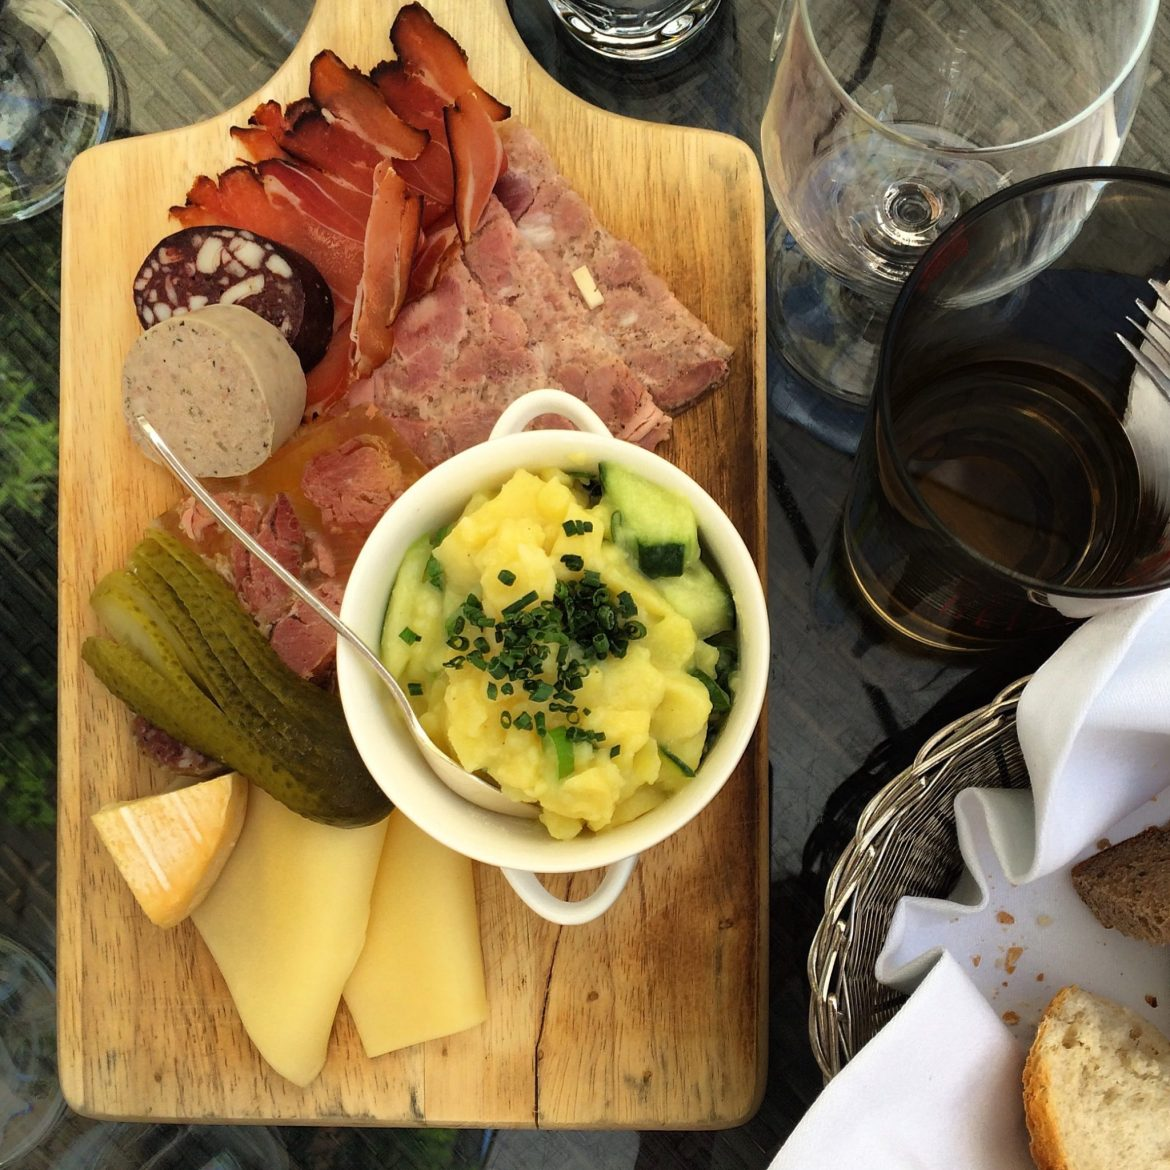 A tasting platter of meats and cheeses